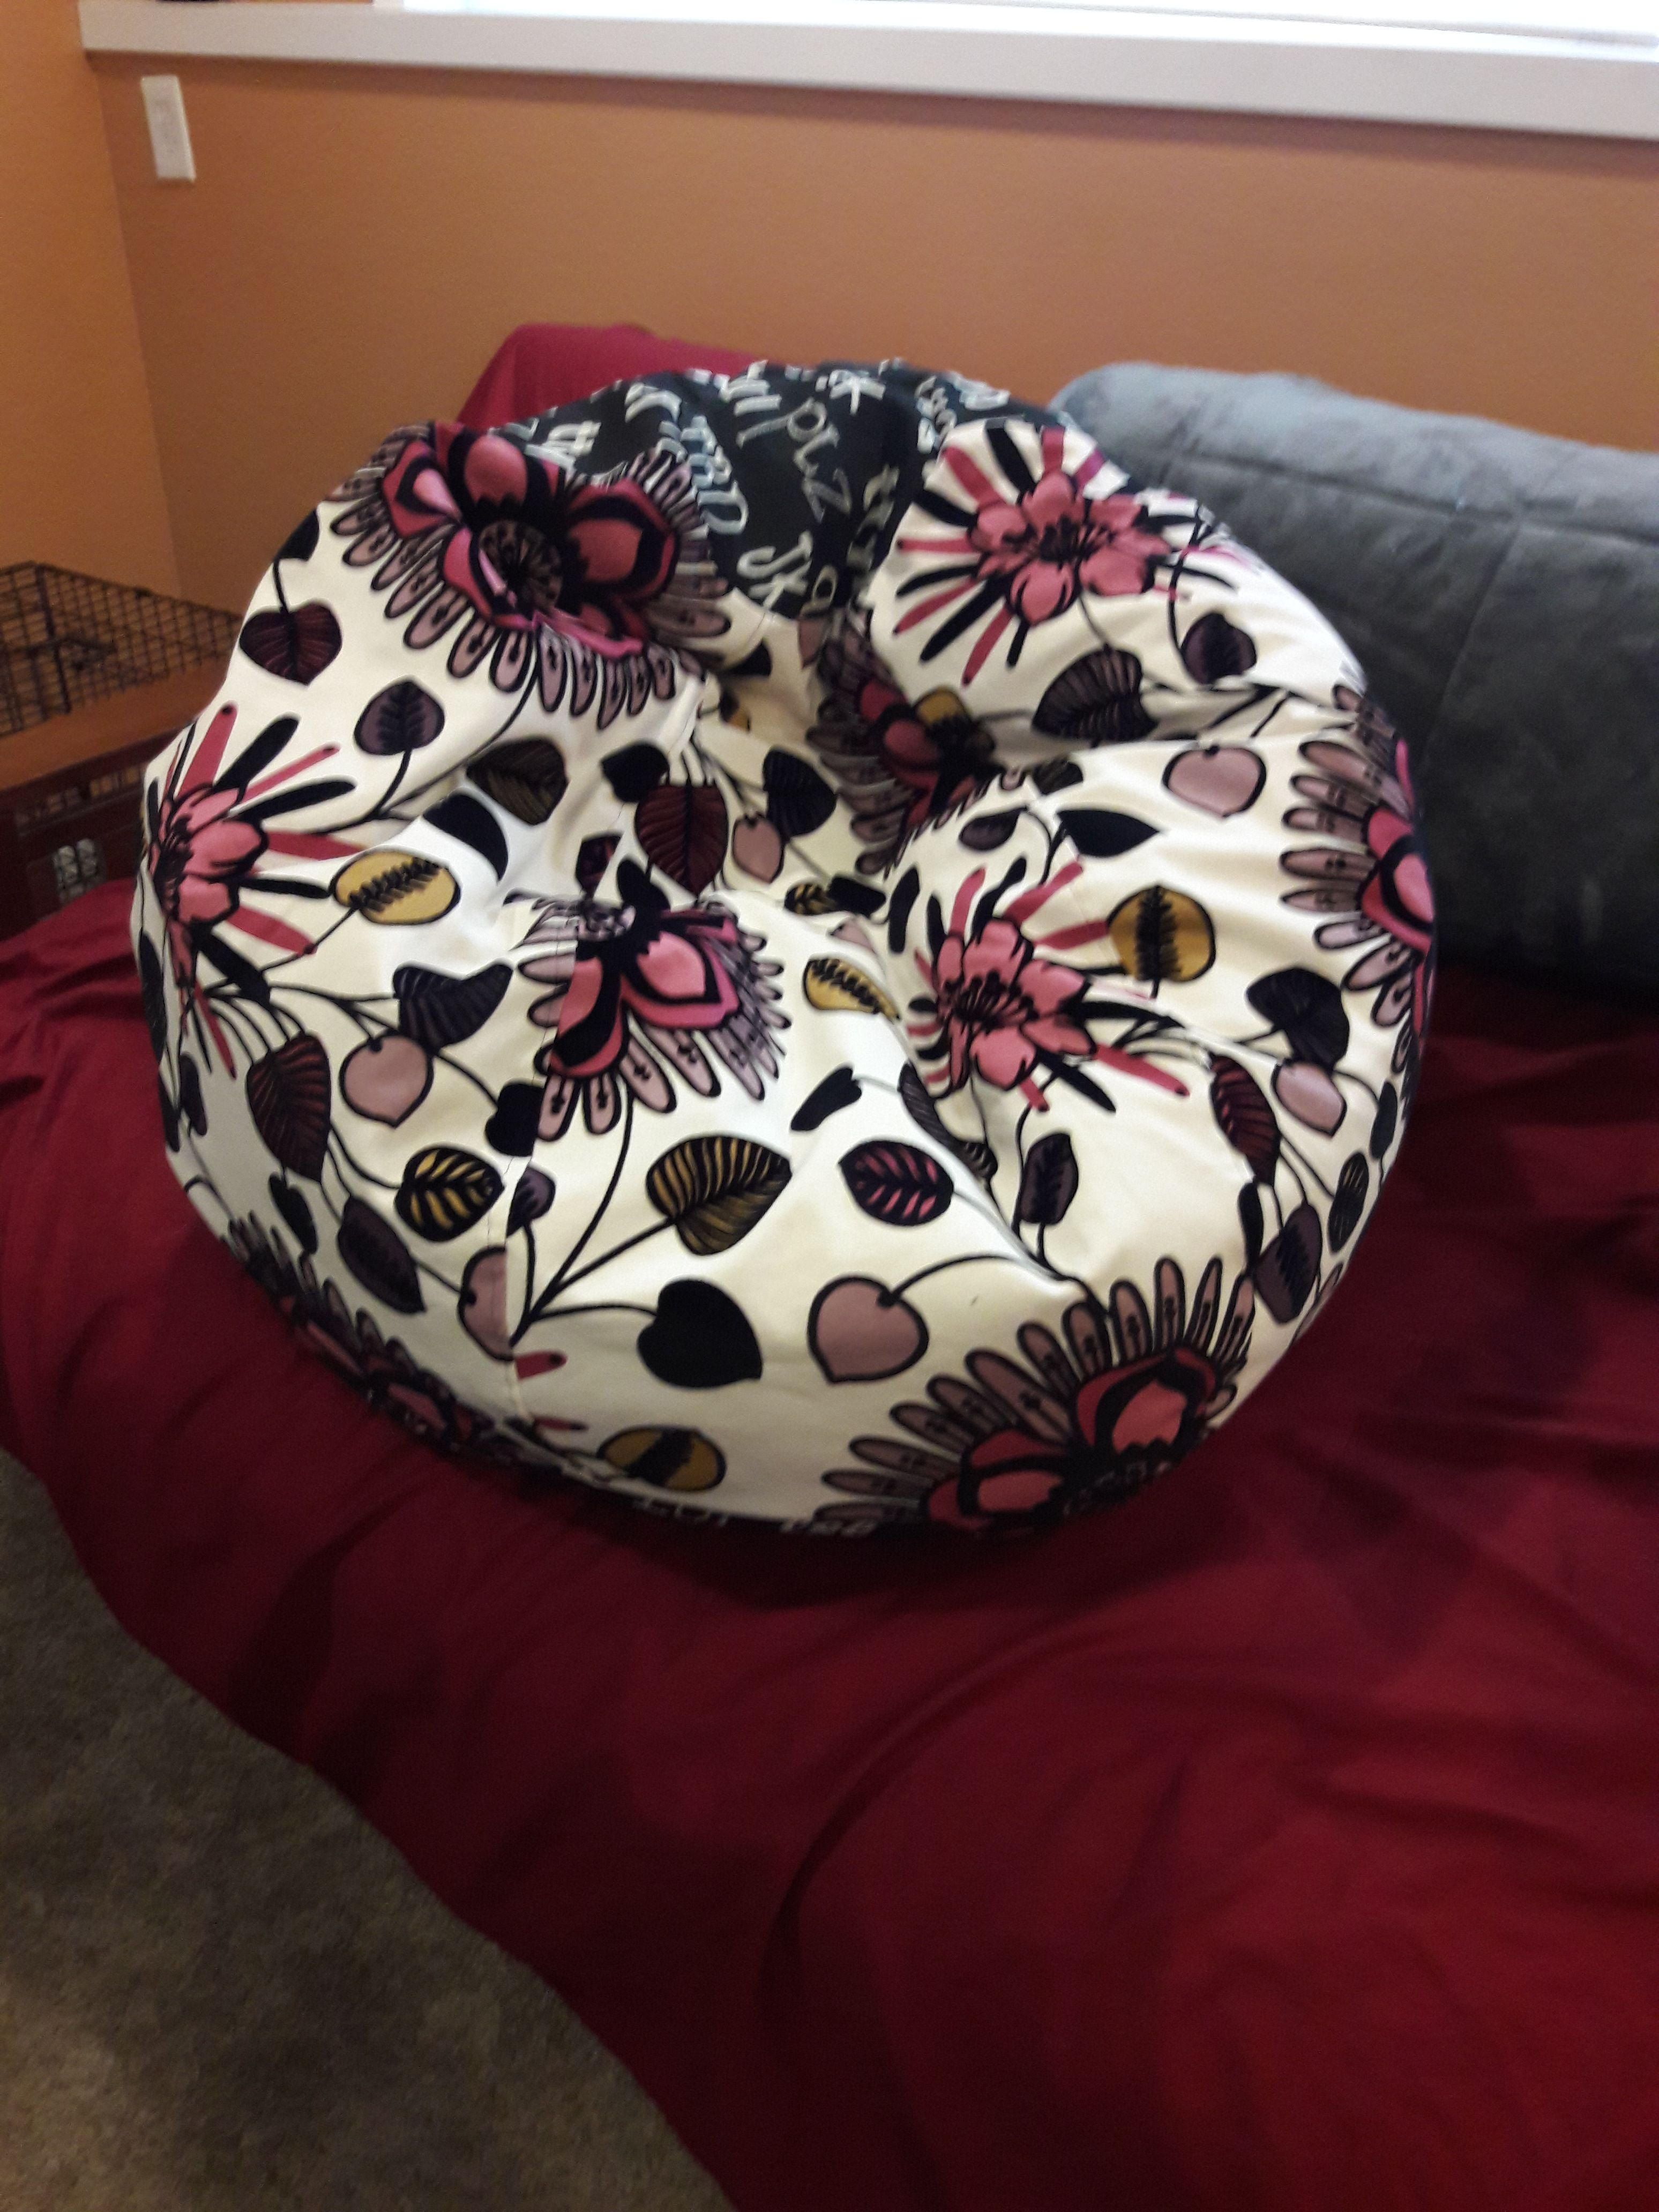 How To Make A Bean Bag Chair Step By Step Directions To Make Your Own Beanbag In Any Size Make A Bean Bag Chair Bean Bag Chair Pattern Bean Bag Furniture